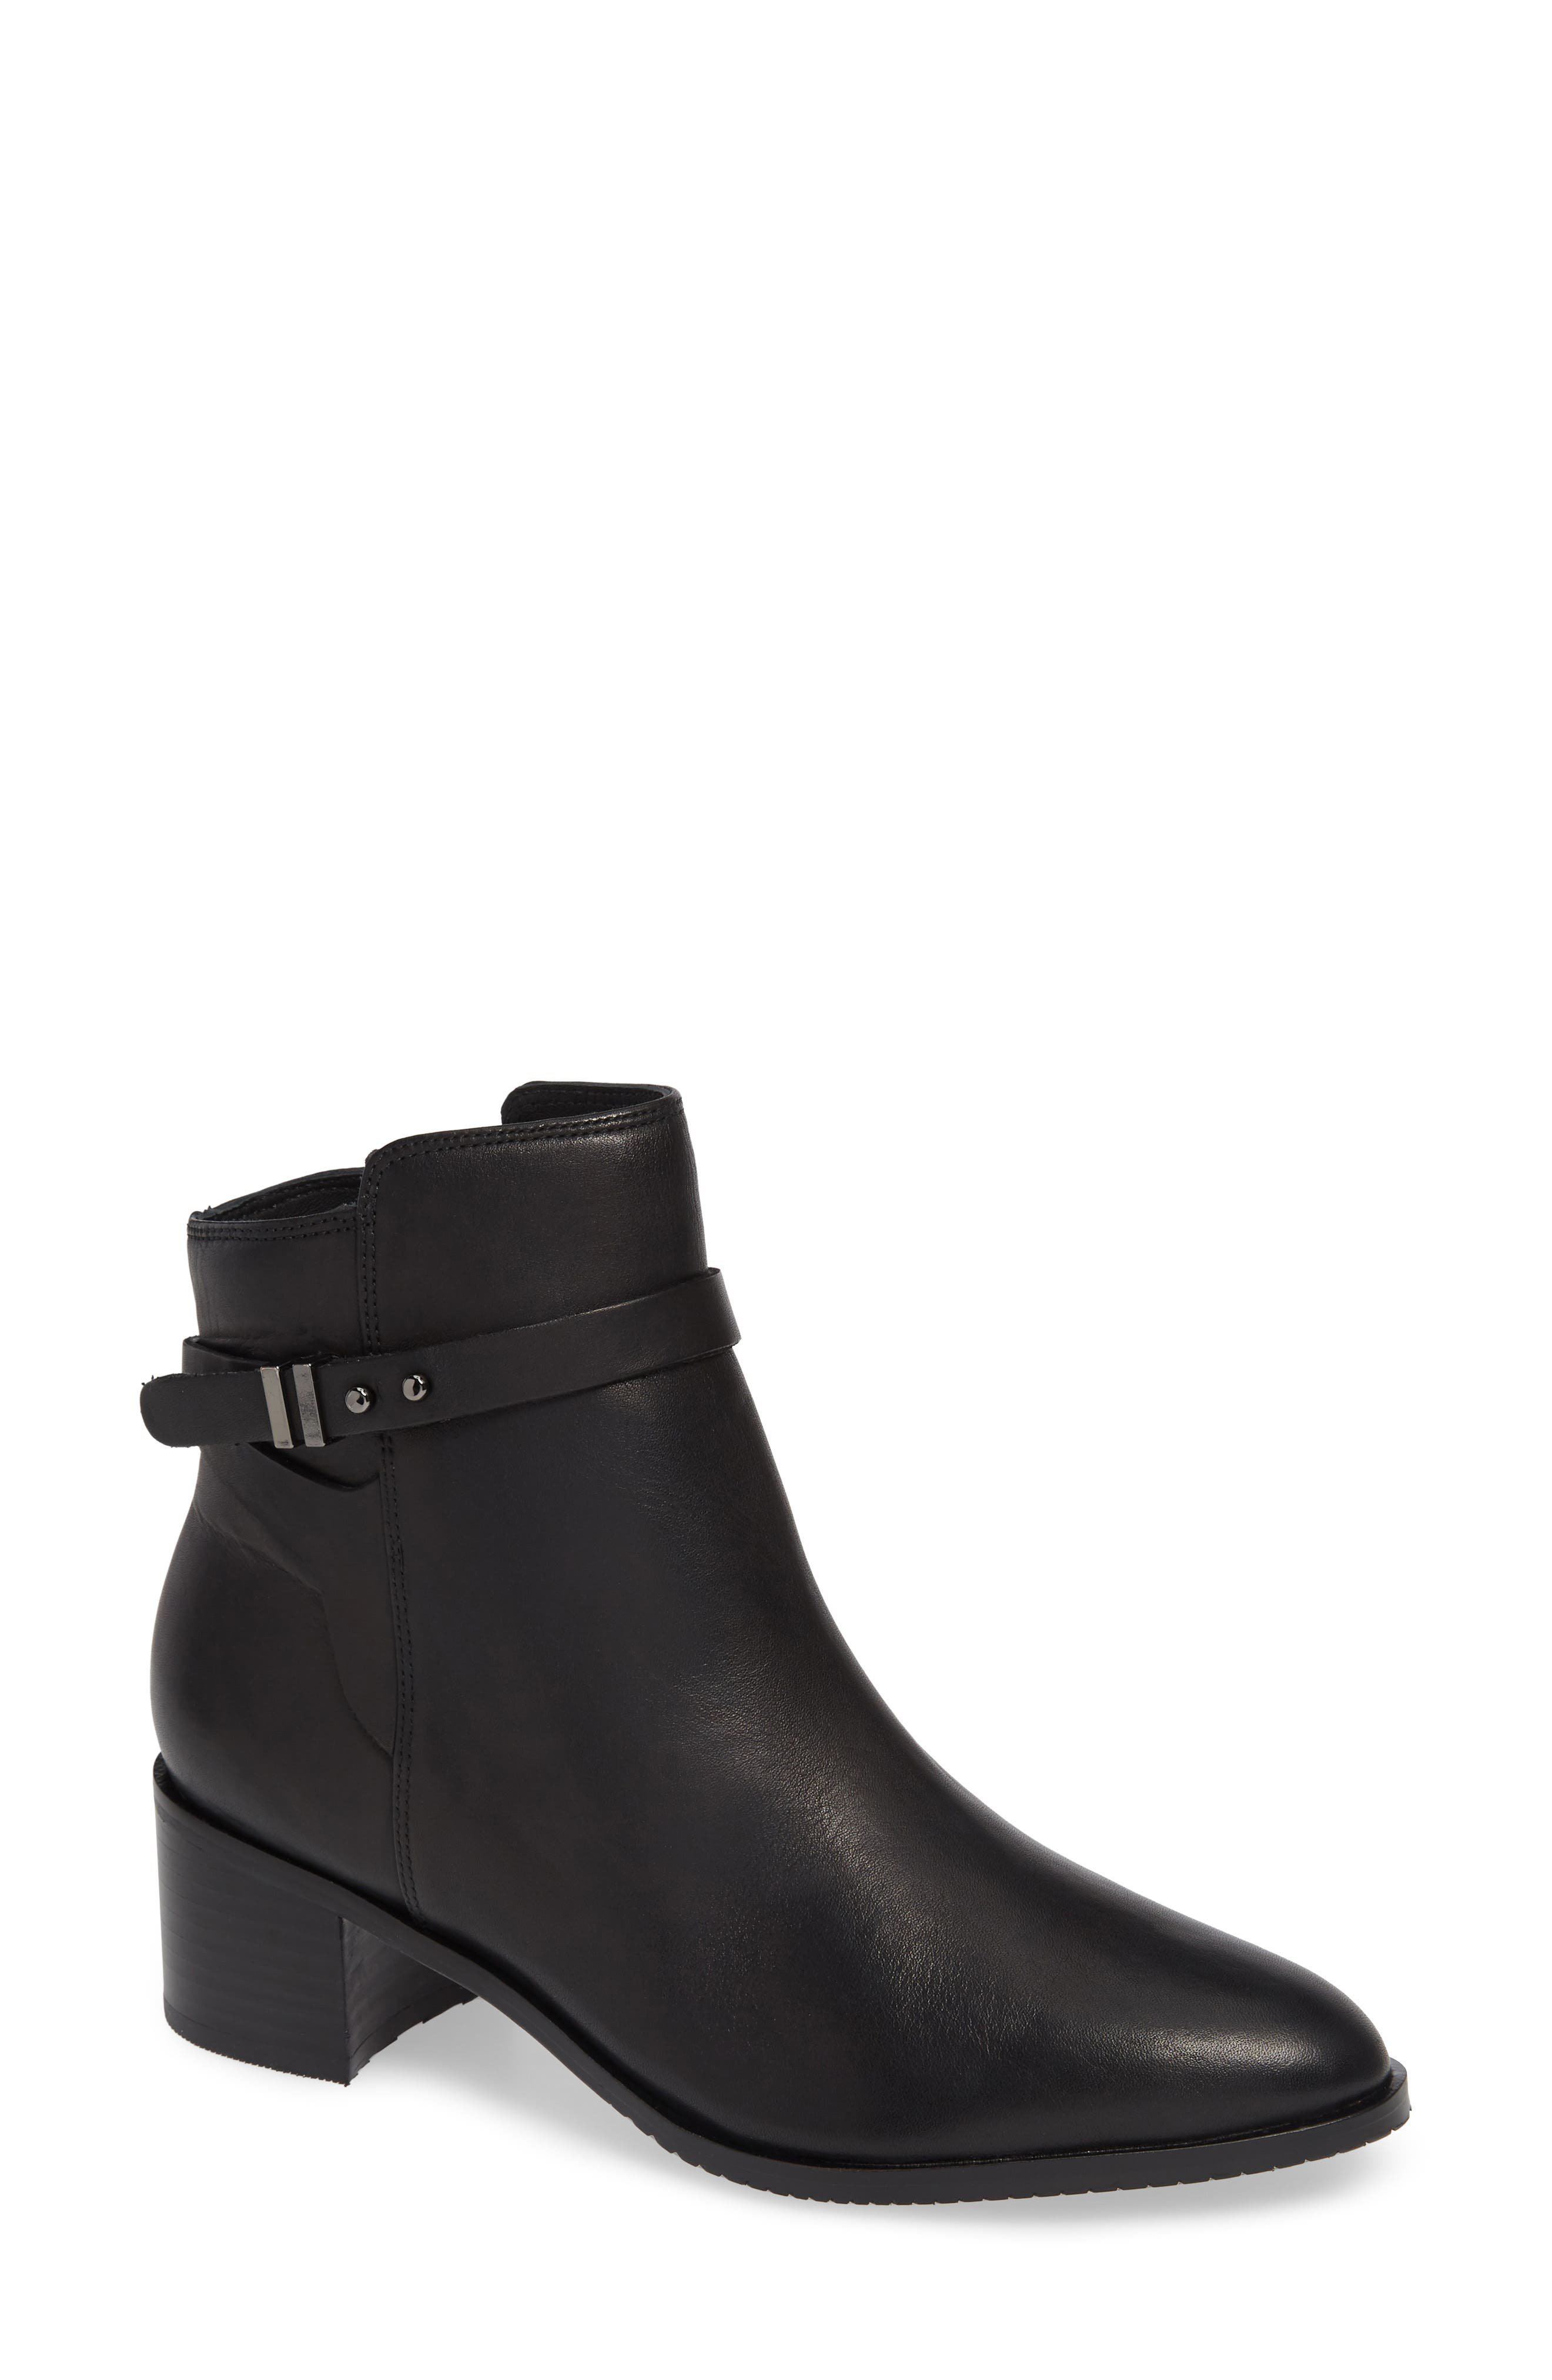 Poise Freya Bootie,                         Main,                         color, BLACK LEATHER